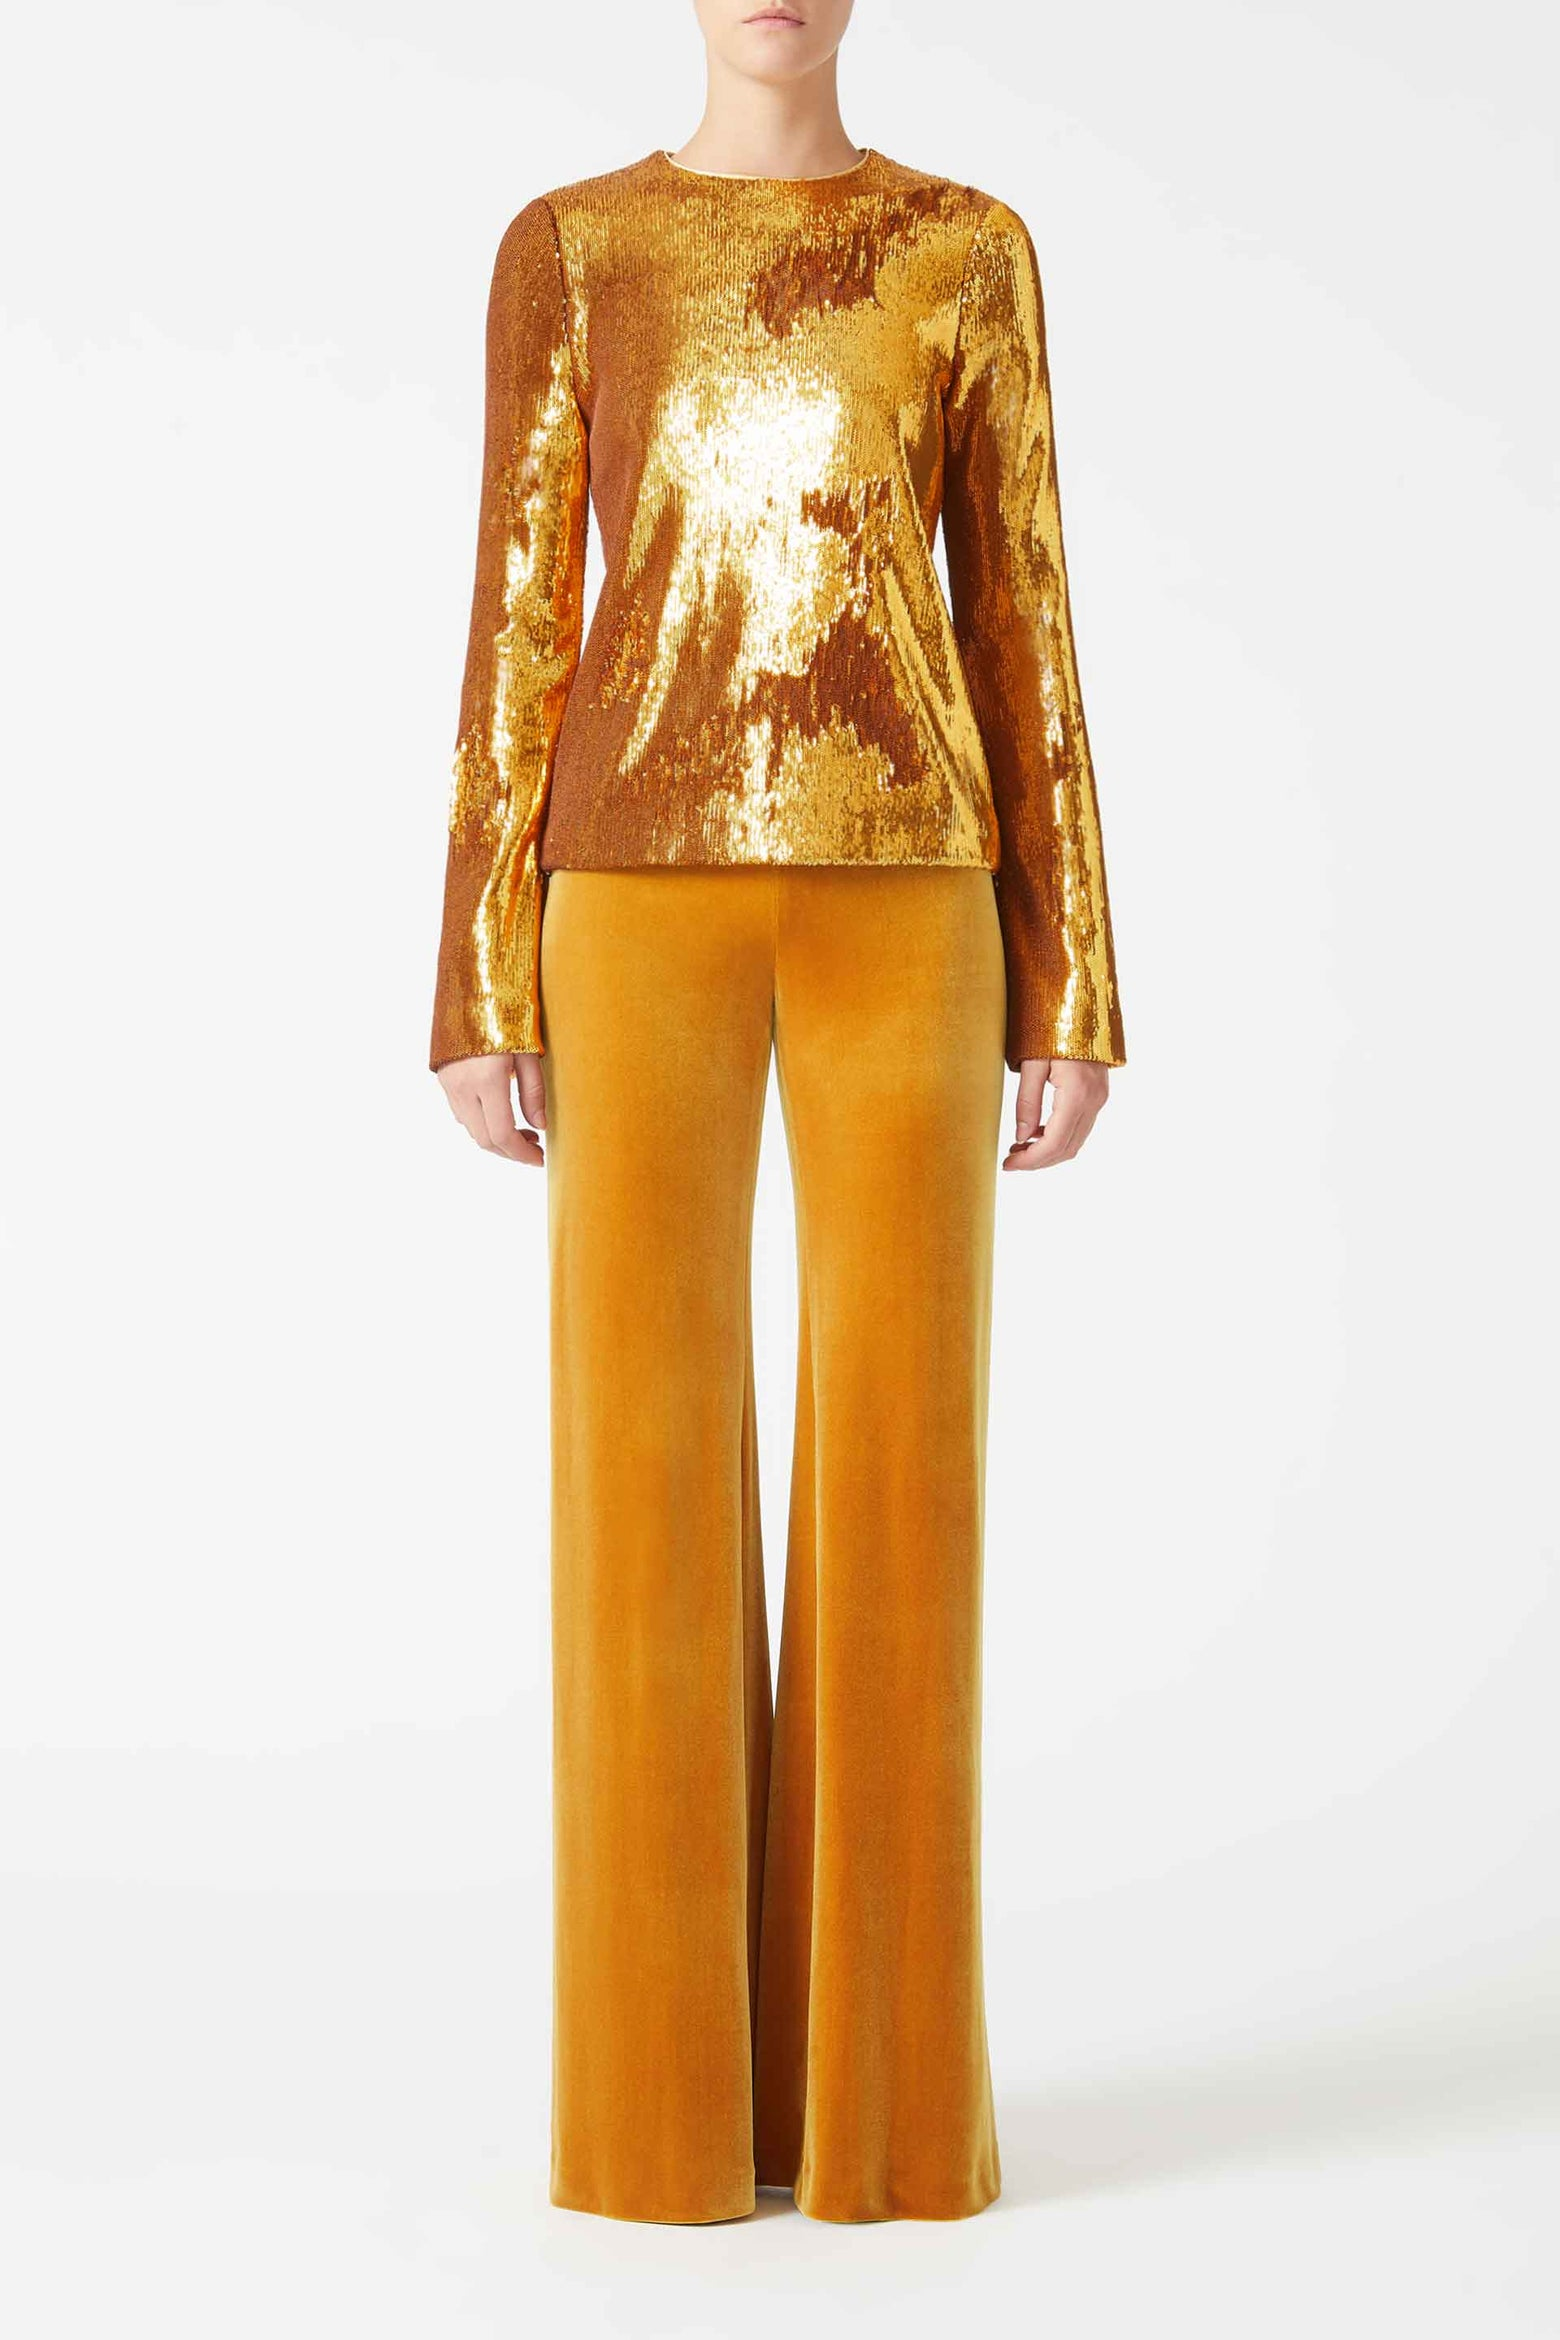 Gilded Clara Top - Burnished Gold